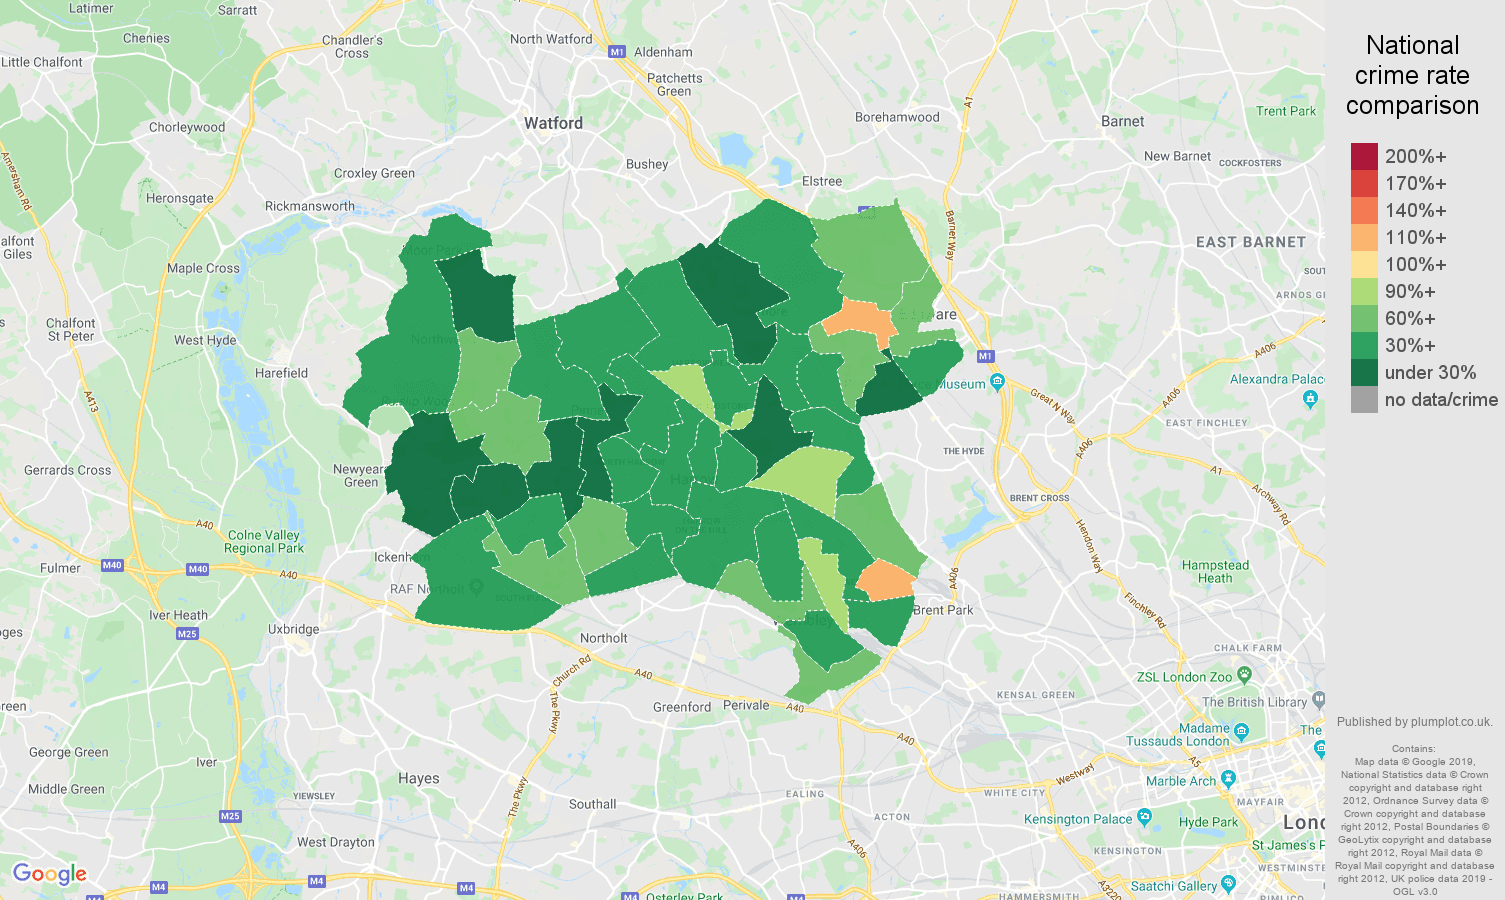 Harrow other crime rate comparison map